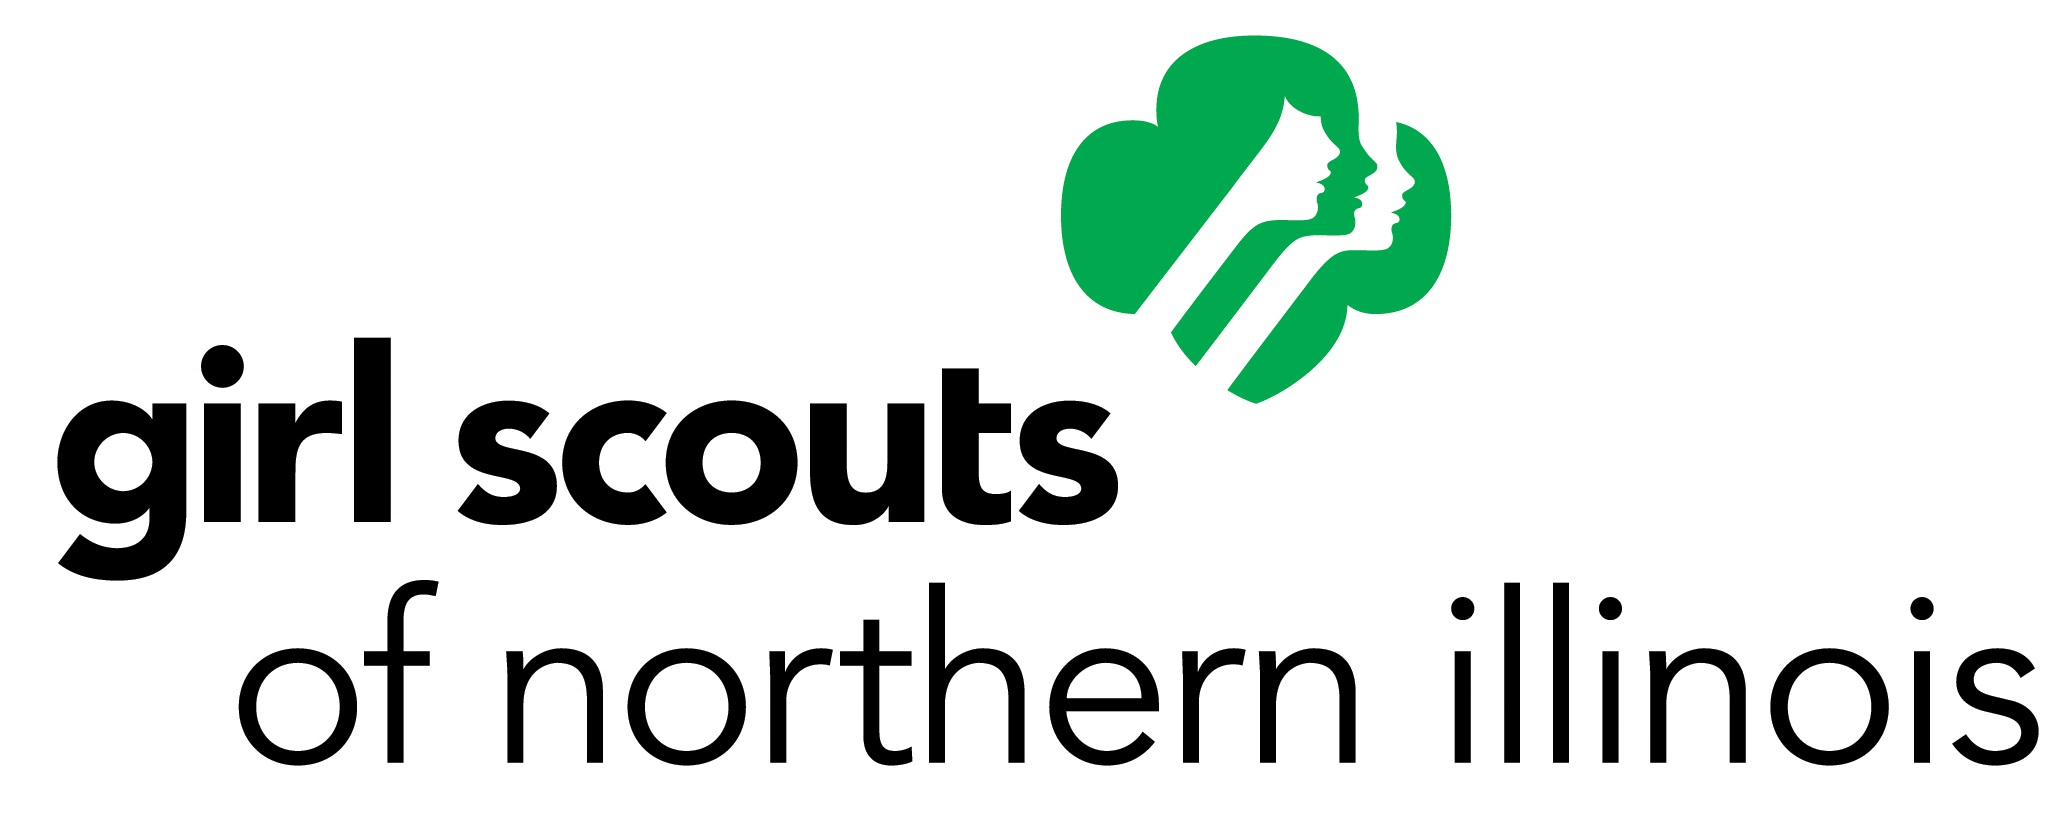 Camp McCormick--Girl Scouts of Northern Illinois